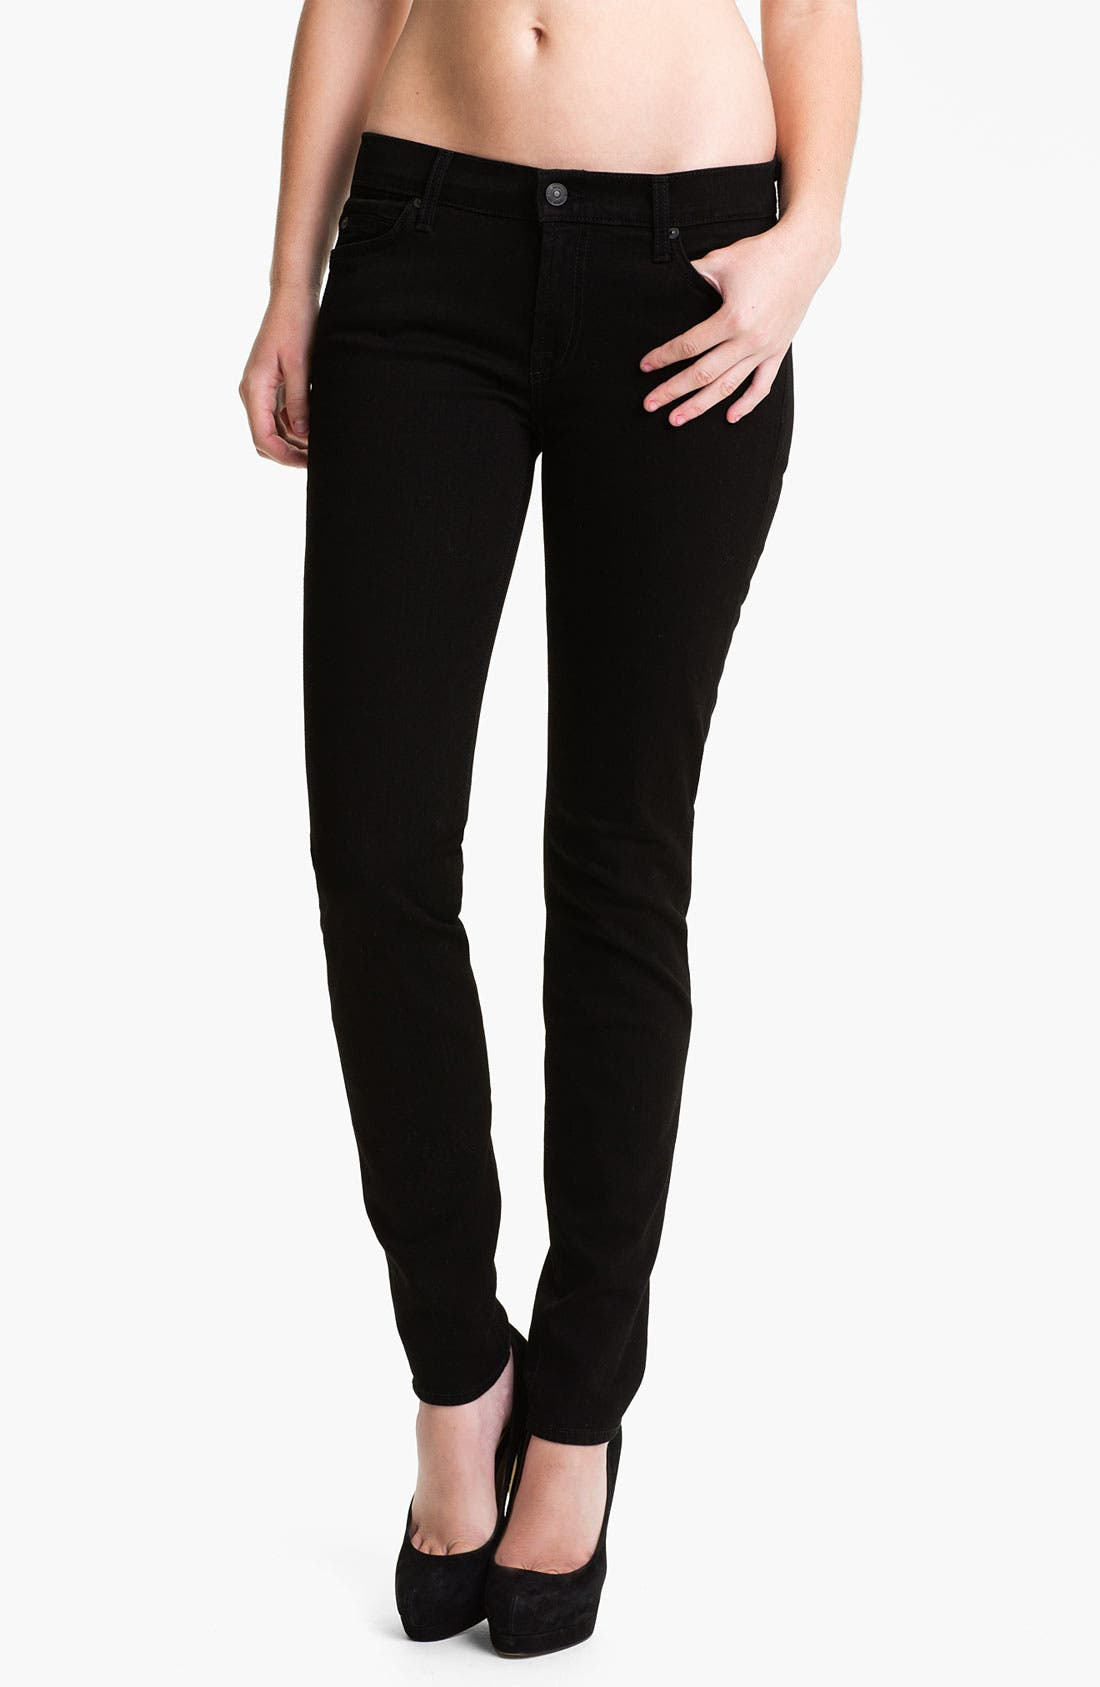 Alternate Image 1 Selected - 7 For All Mankind® 'The Skinny' Stretch Jeans (Clean Black)